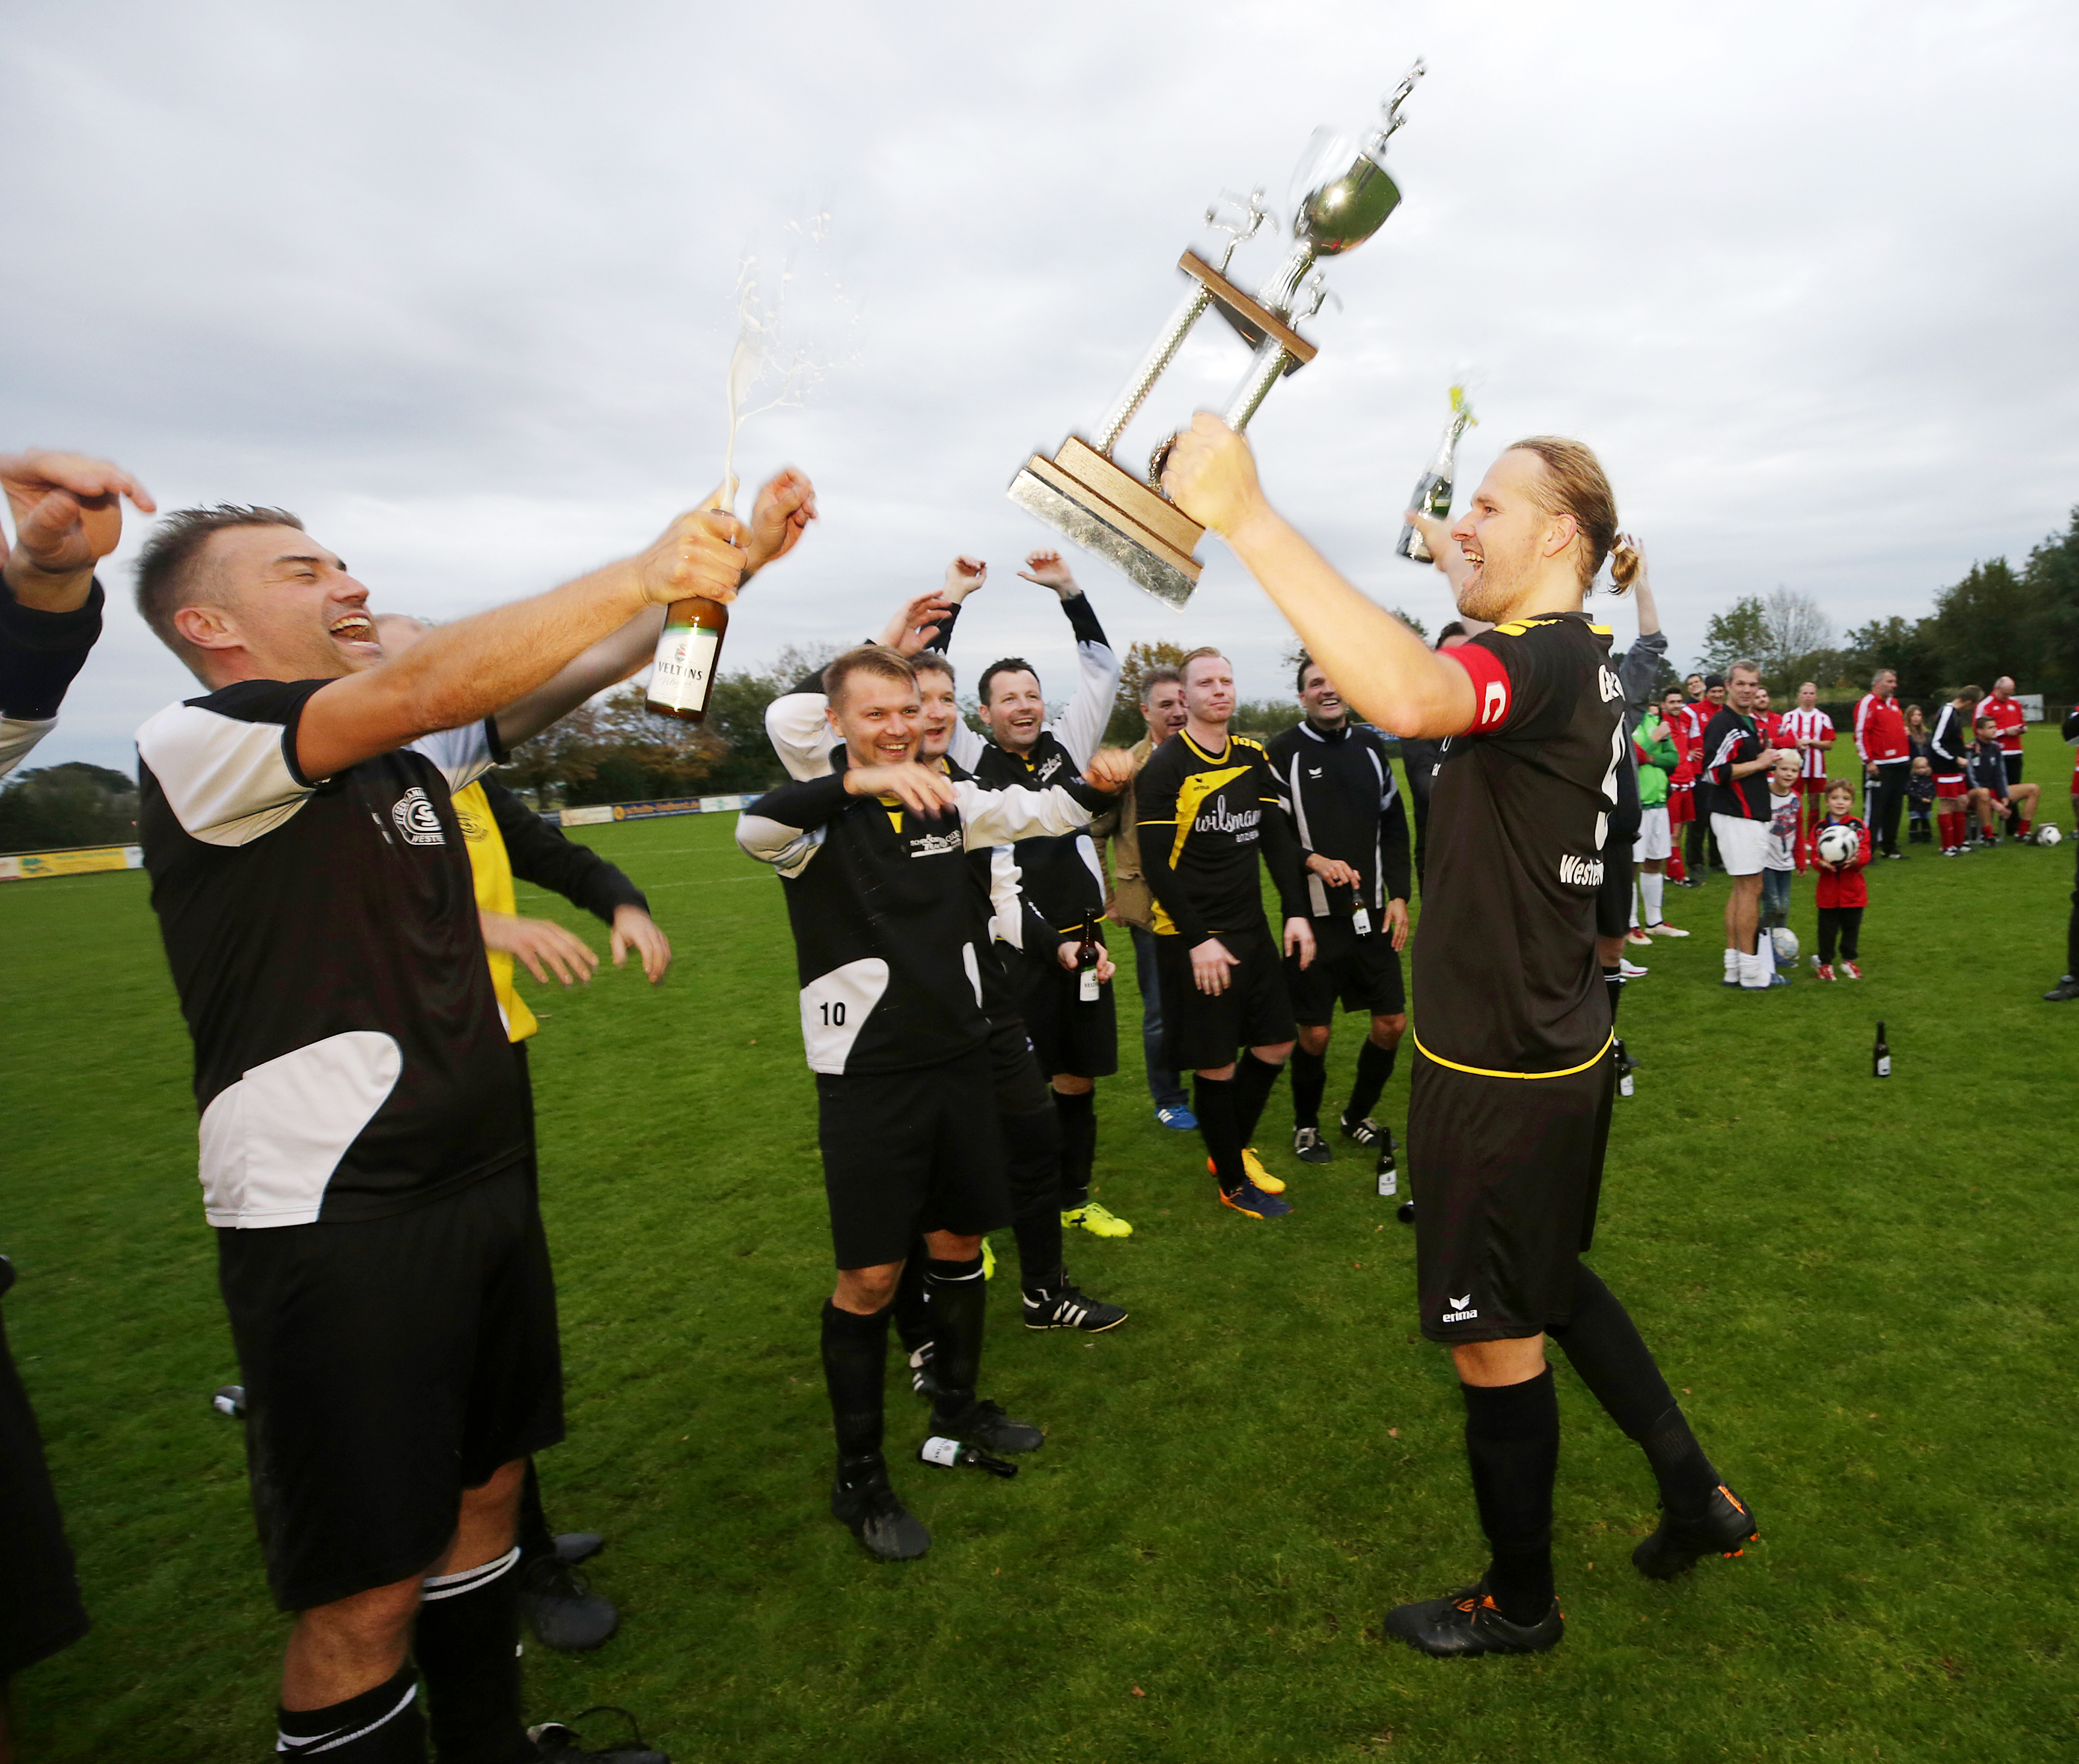 hm ue32 landratscup finale sieger germania westerwiehe martin vorderbrugge re 02